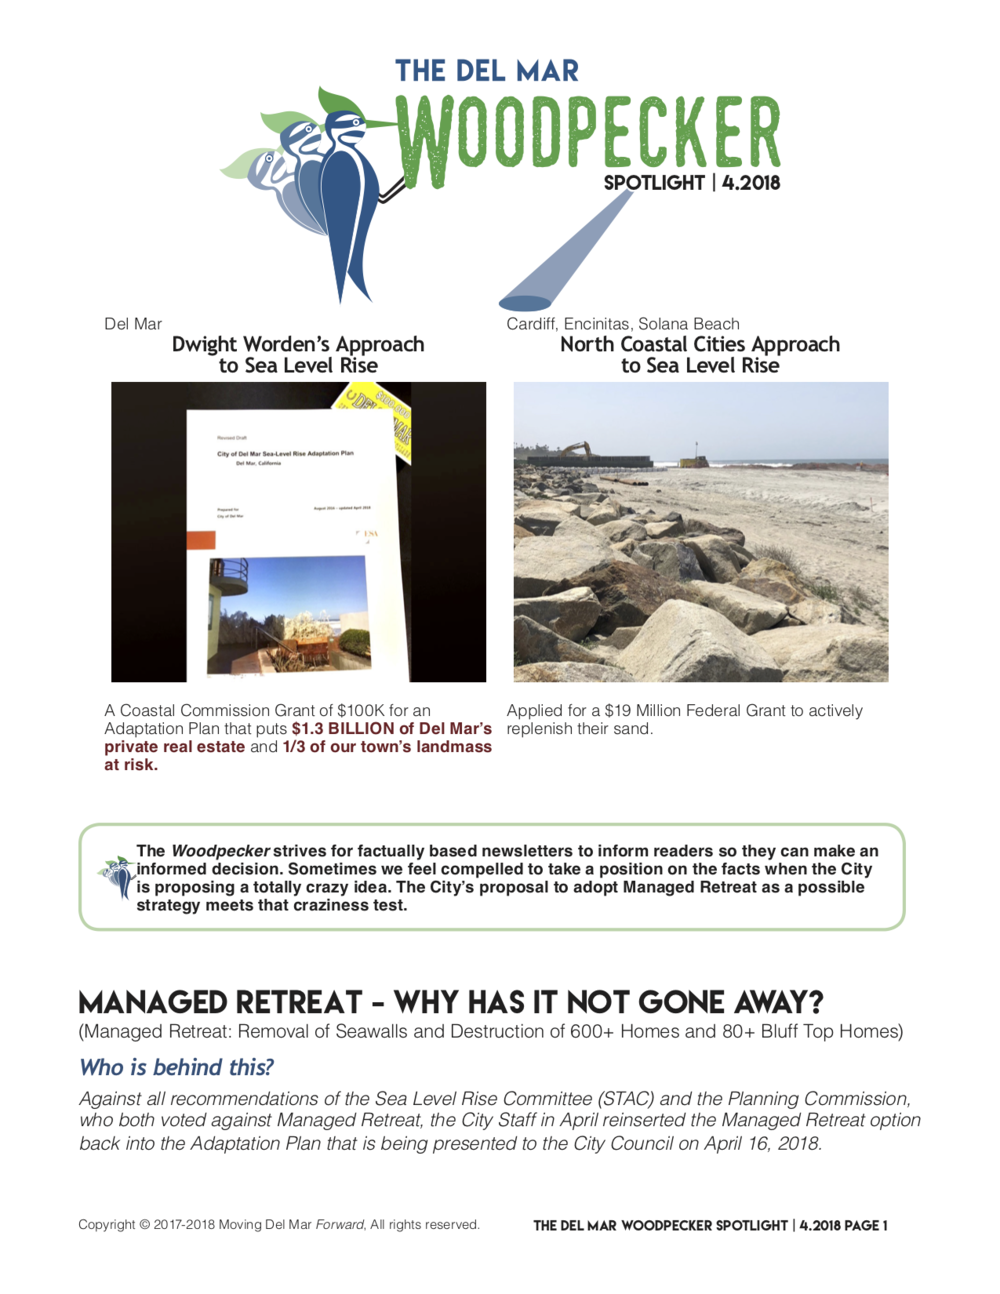 """Spotlight 4/2018 - """"The City Staff in April reinserted the Managed Retreat (removal of Seawalls and Destruction of 600+ Homes and 80+ Bluff Top Homes) option back into the Adaptation Plan"""""""